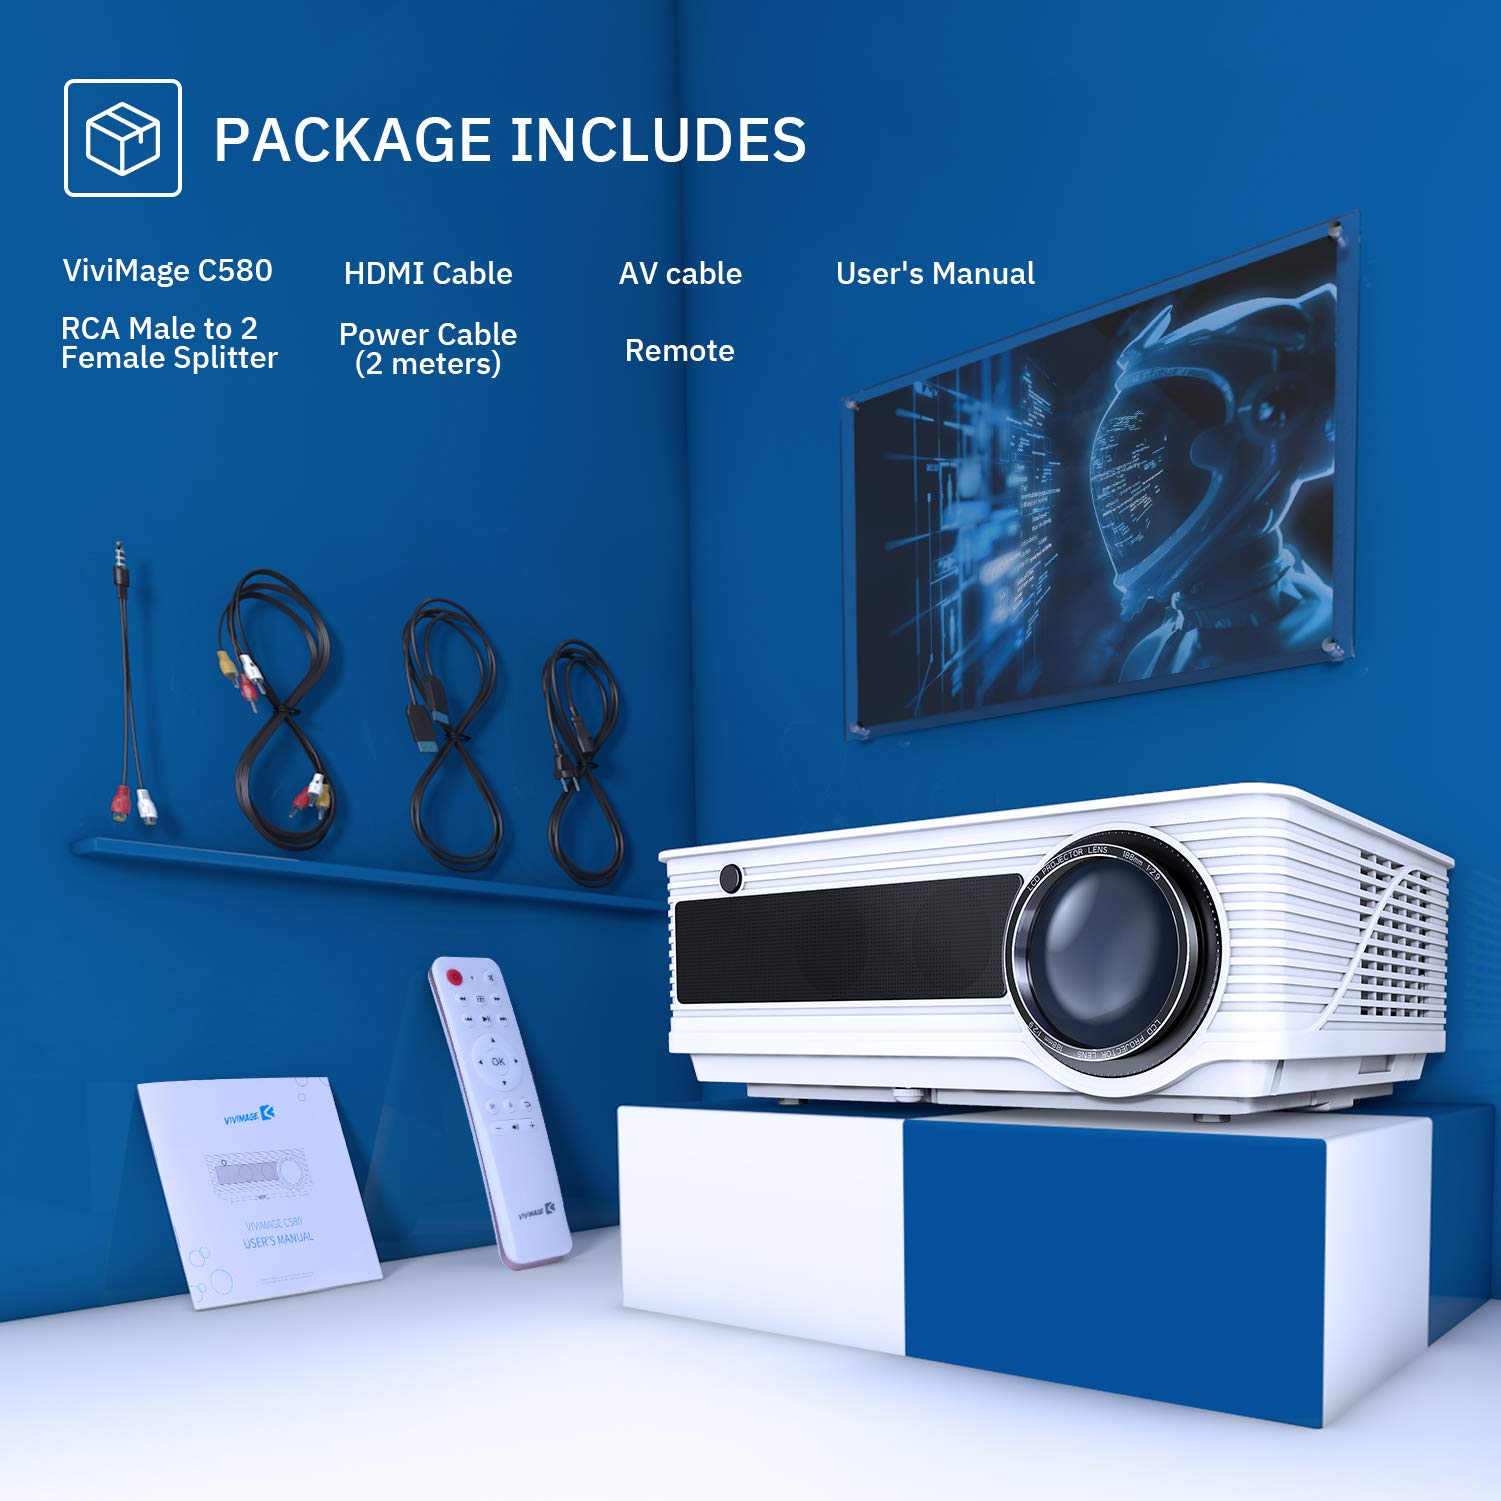 VIVIMAGE Cinemoon 580 Projector1080P Supported, 4000 Lux High Brightness Video Projector with 200'' Projection Size Includes HDMI Cable by VIVIMAGE (Image #9)